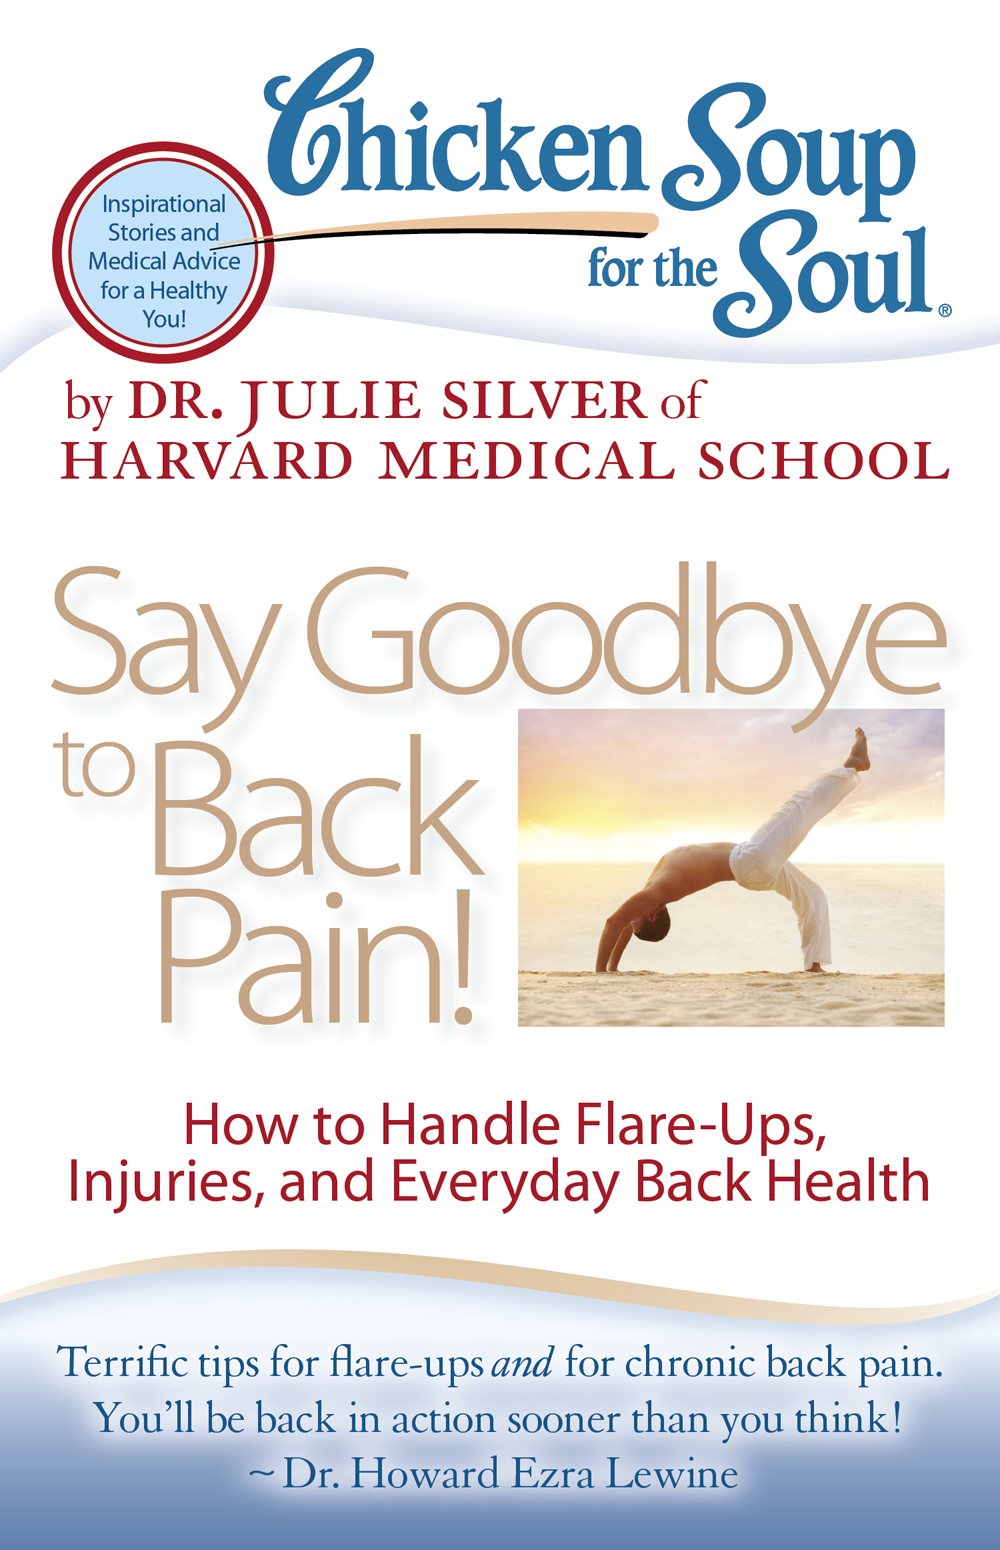 Chicken Soup For the Soul - Say Goodbye to Back Pain Book Cover